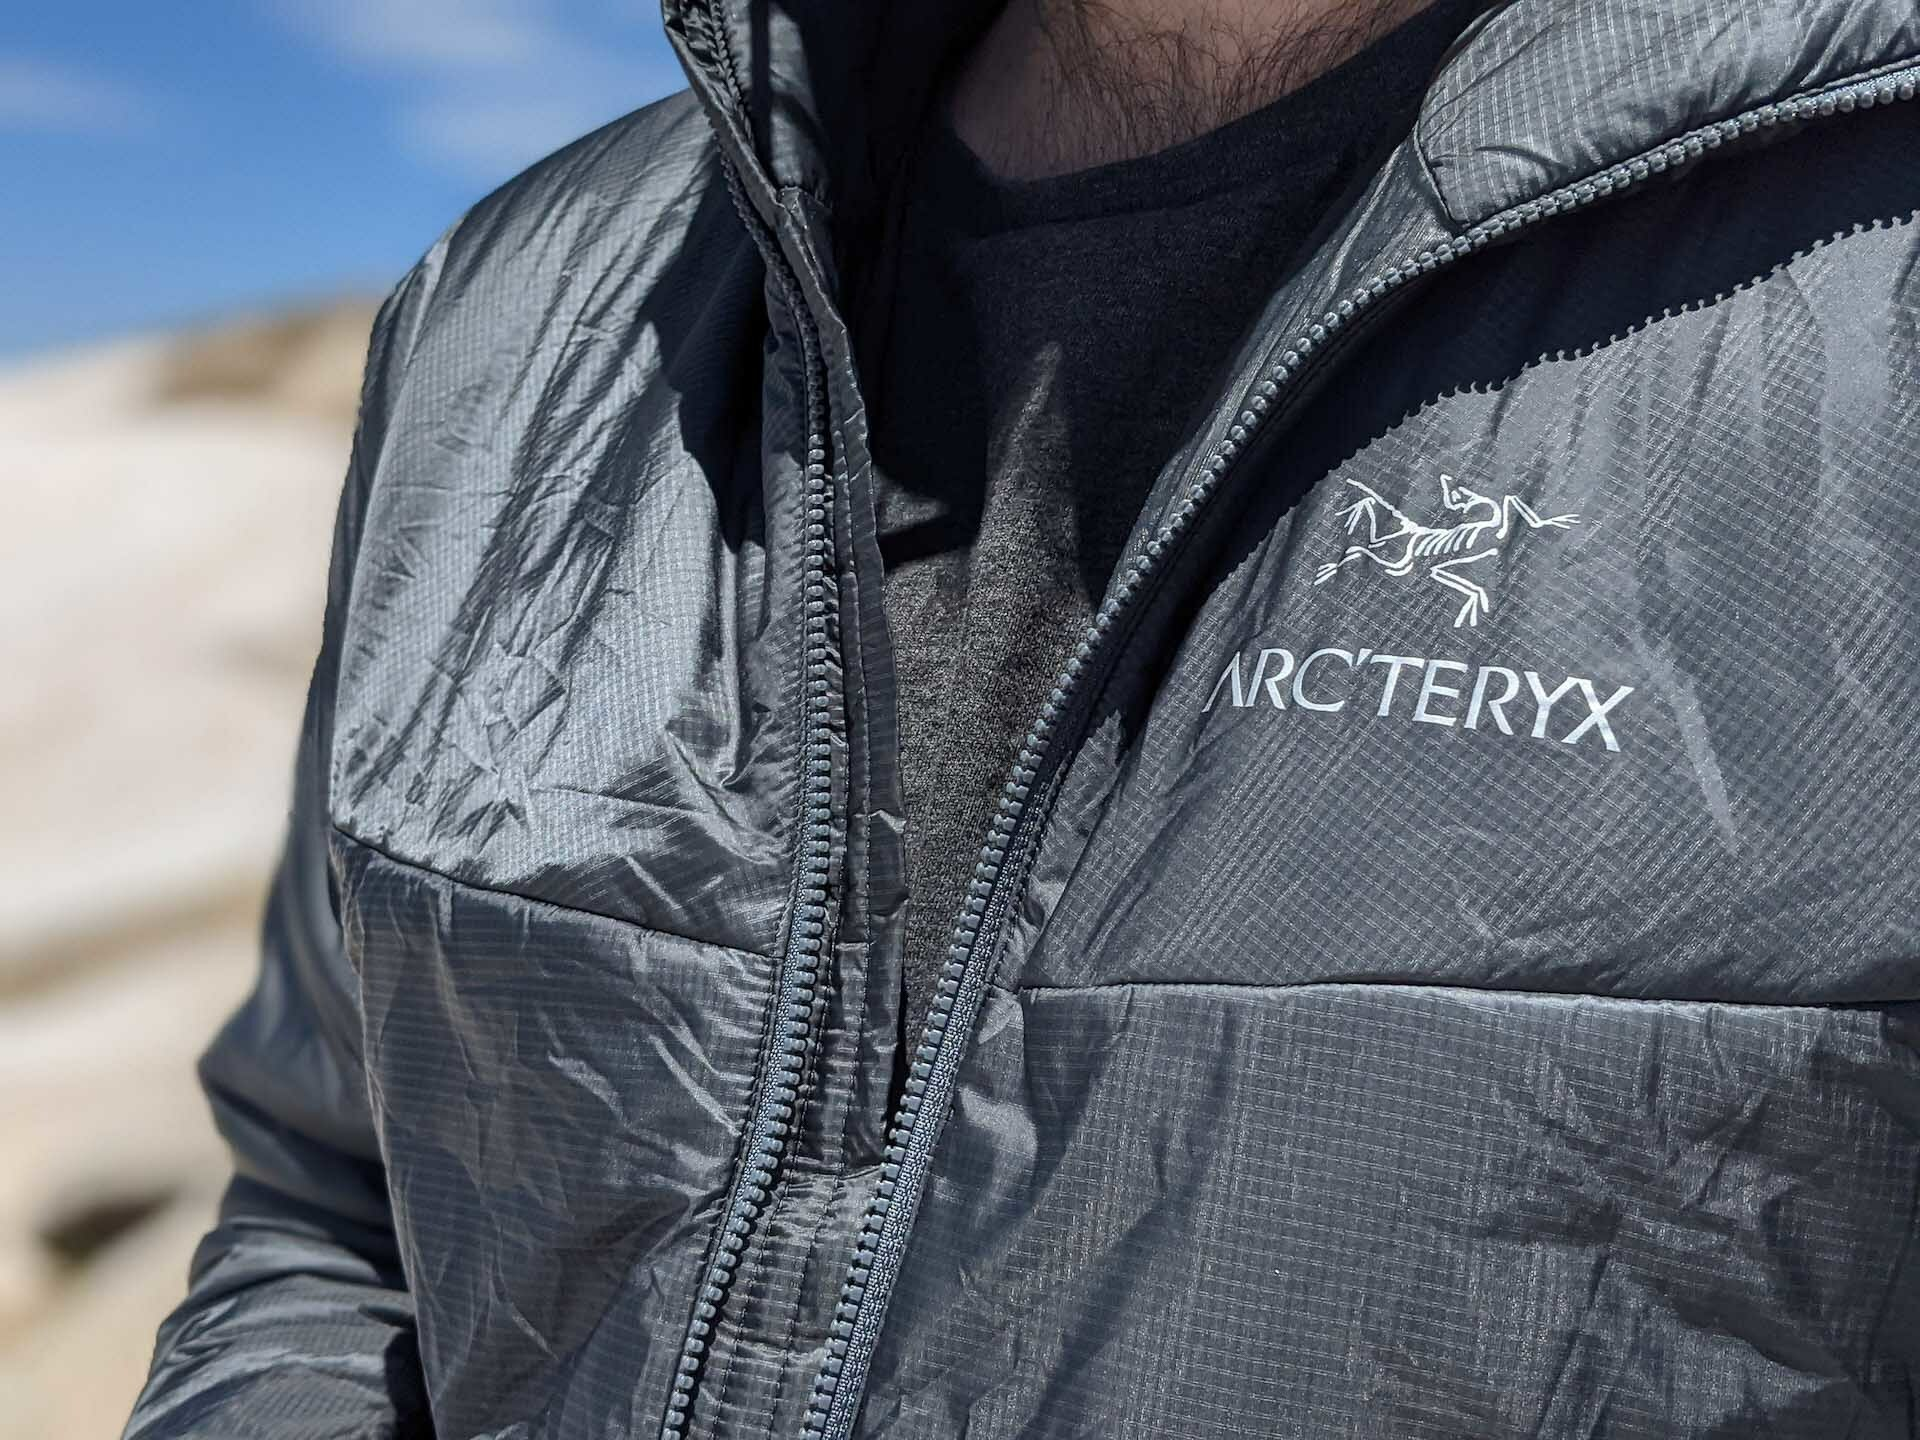 Arc'teryx Nuclei FL Jacket // Gear Review, Aidan howes, kosciuszko, close up